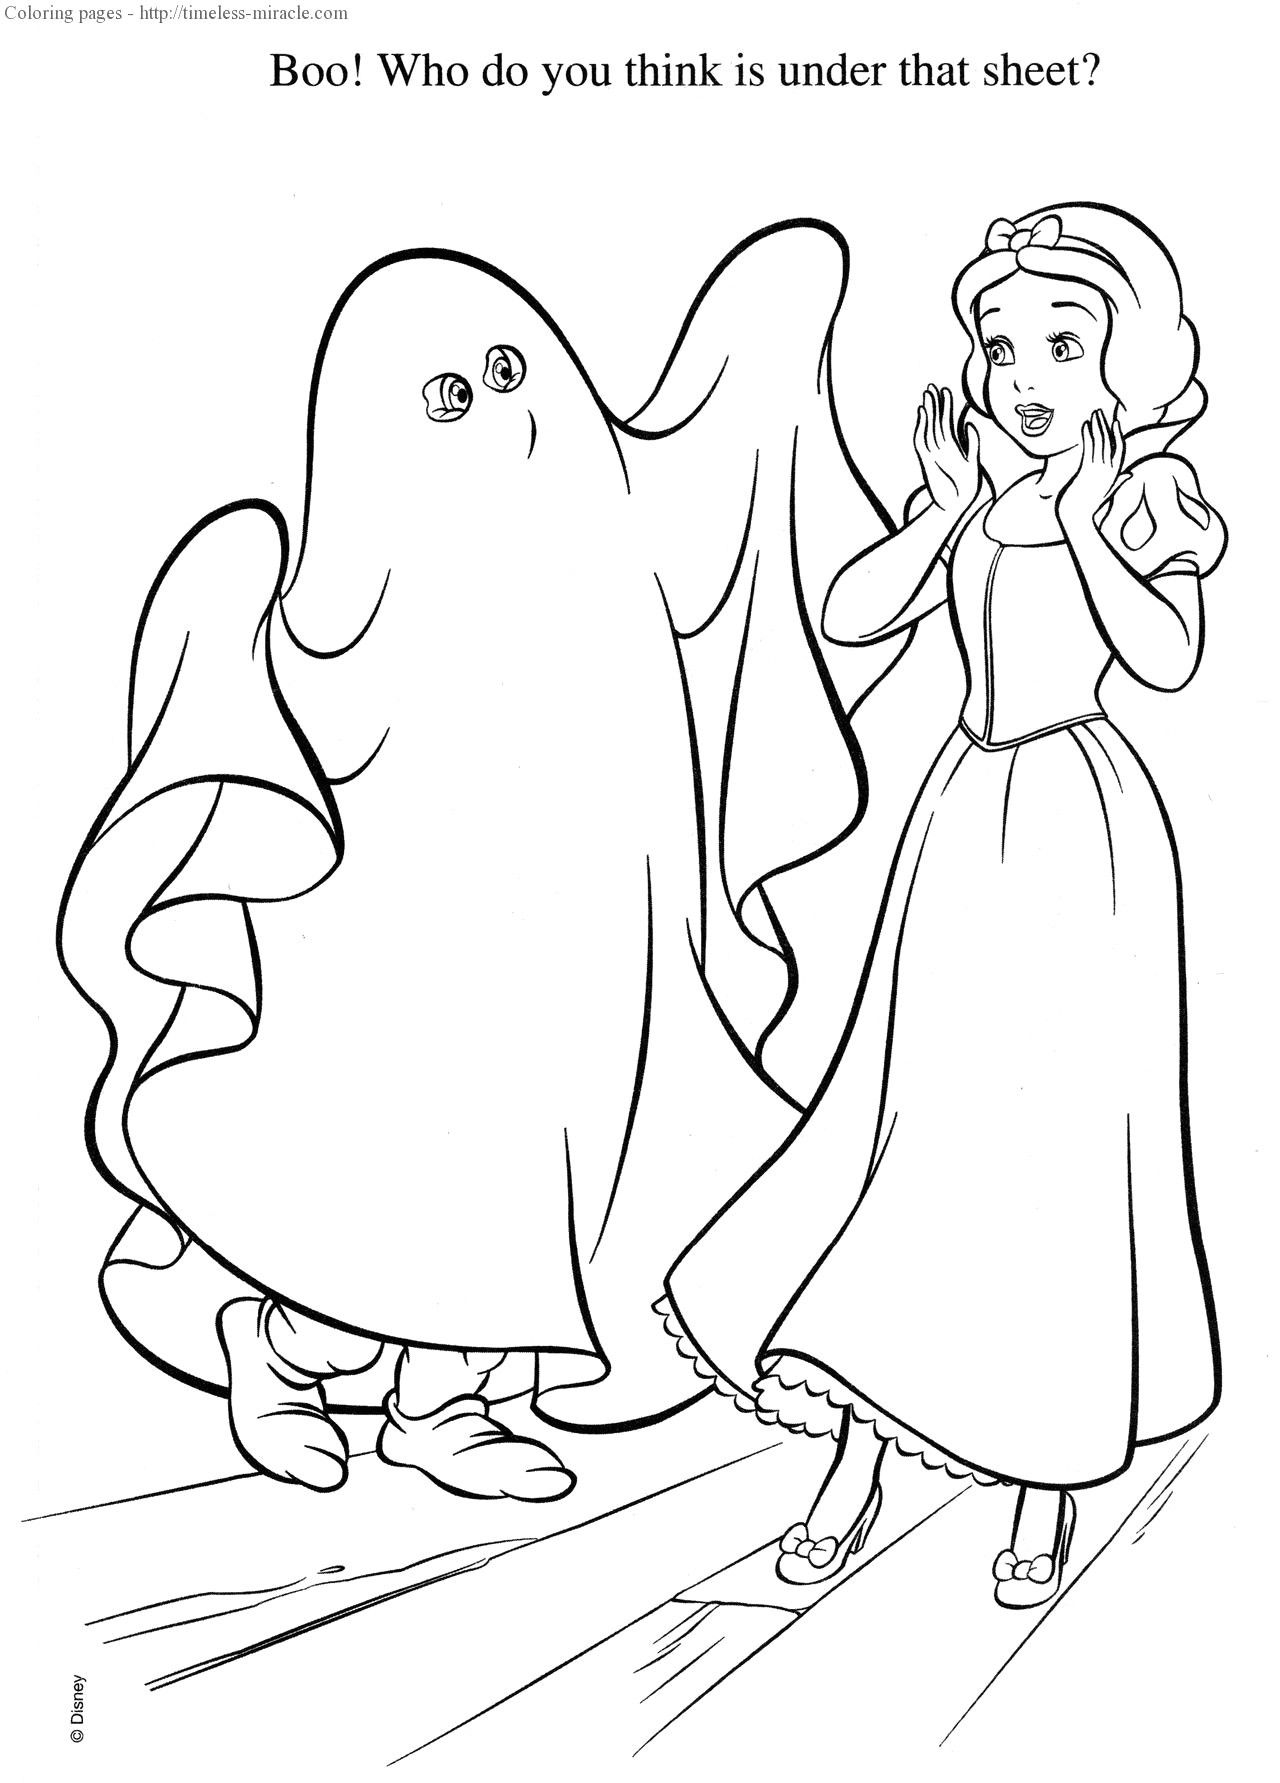 Princess Halloween Coloring Sheets New Disney Princess Halloween Coloring Pages 6 C Pa Halloween Coloring Sheets Halloween Coloring Pages Disney Coloring Pages